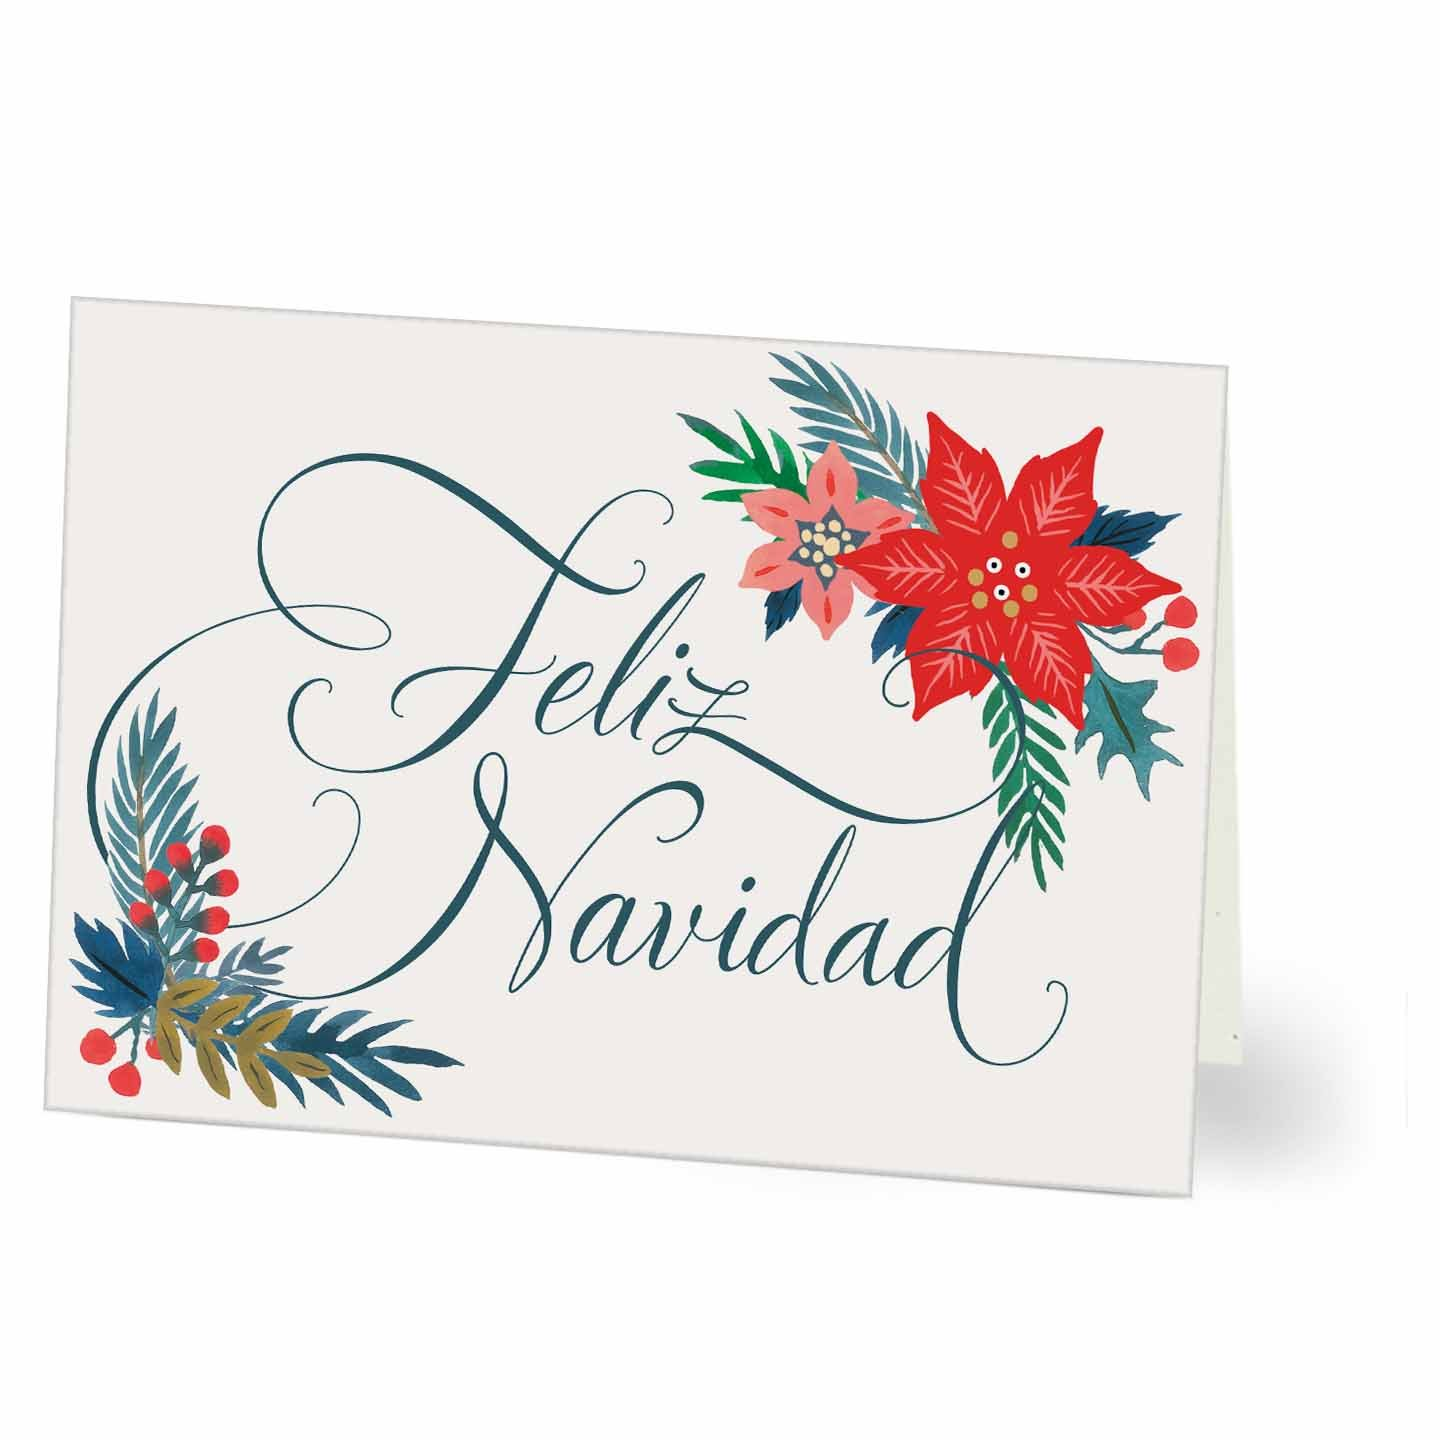 Spanish Hallmark Business Holiday Card For Customers Or Employees